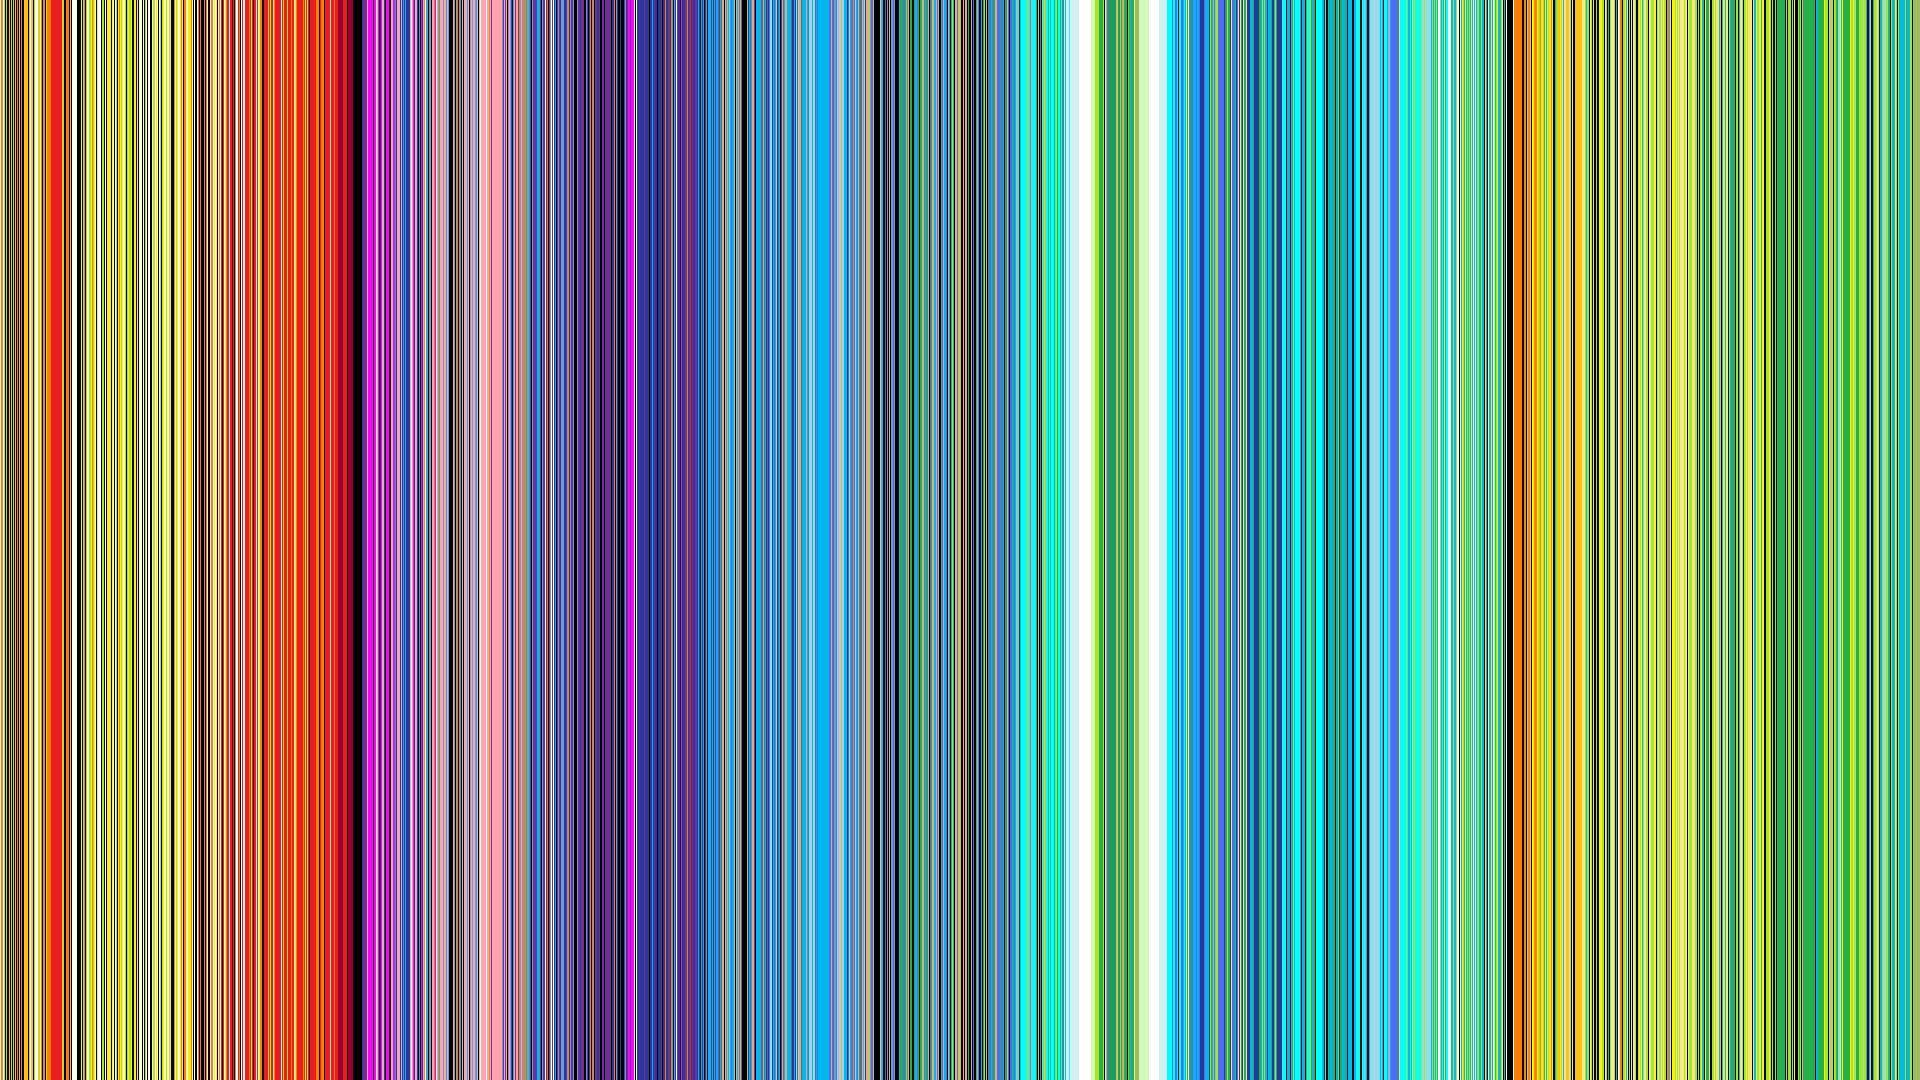 Colorful Stripes Wallpapers Colorful Stripes Wallpapers 1920x1080